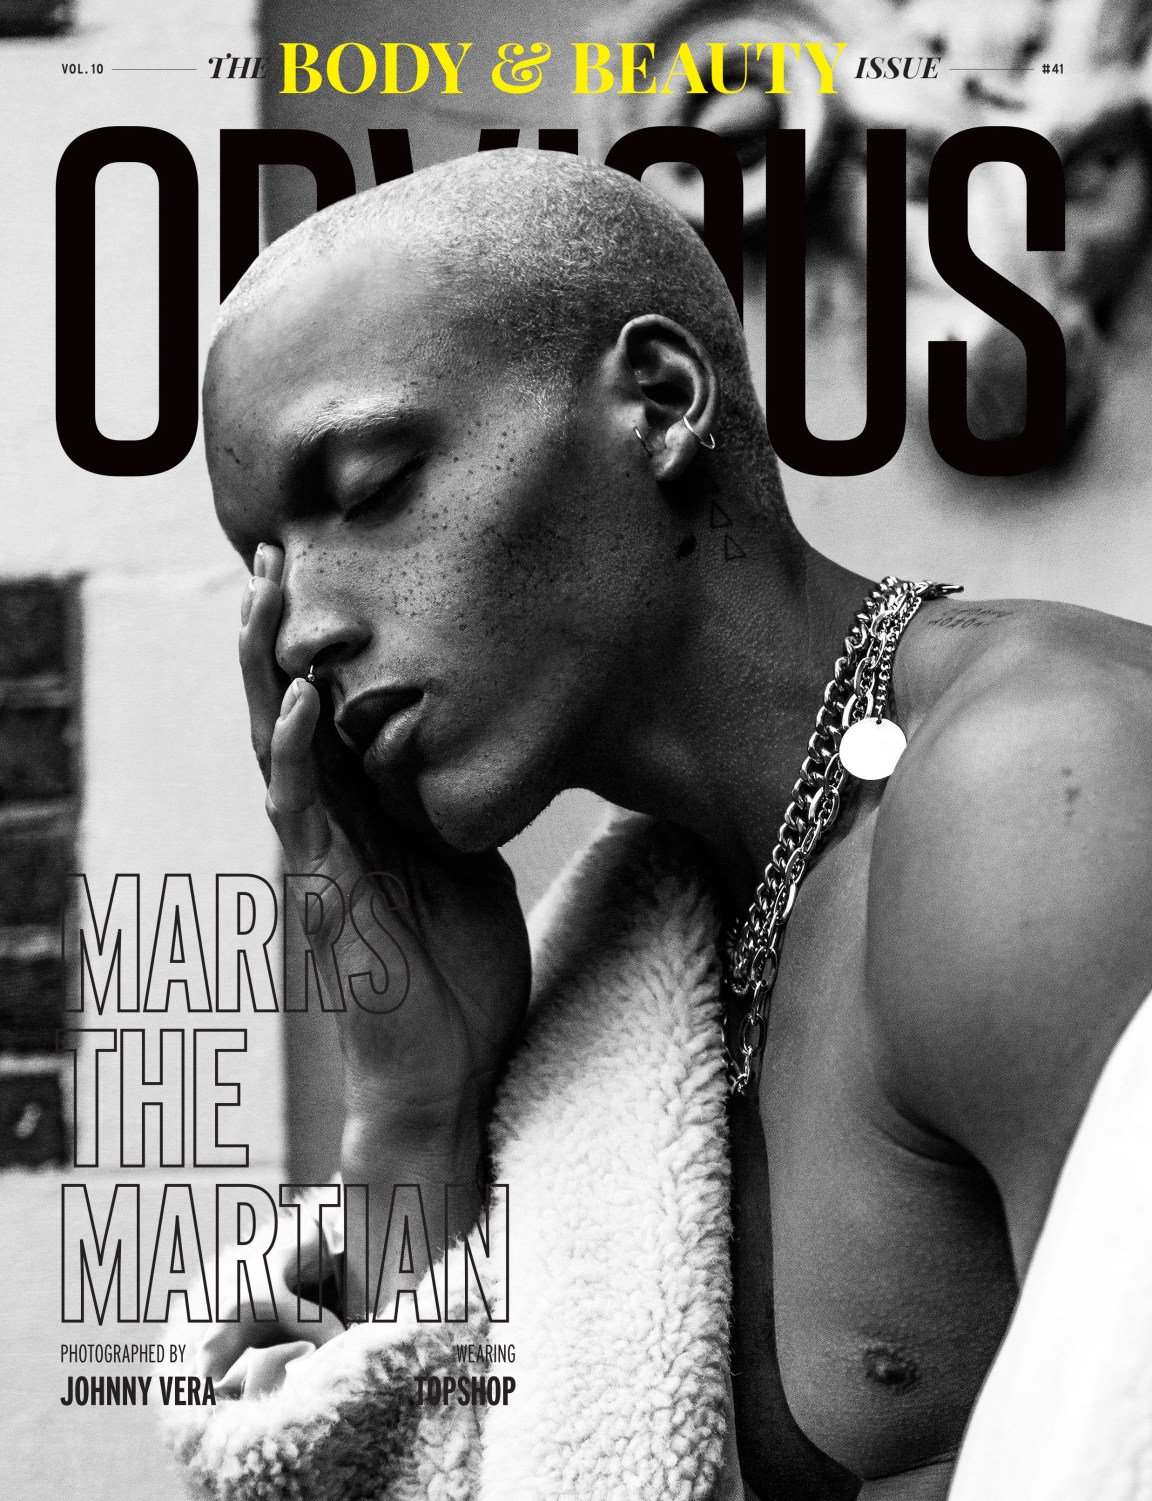 MARRS THE MARTIAN | Body & Beauty Issue